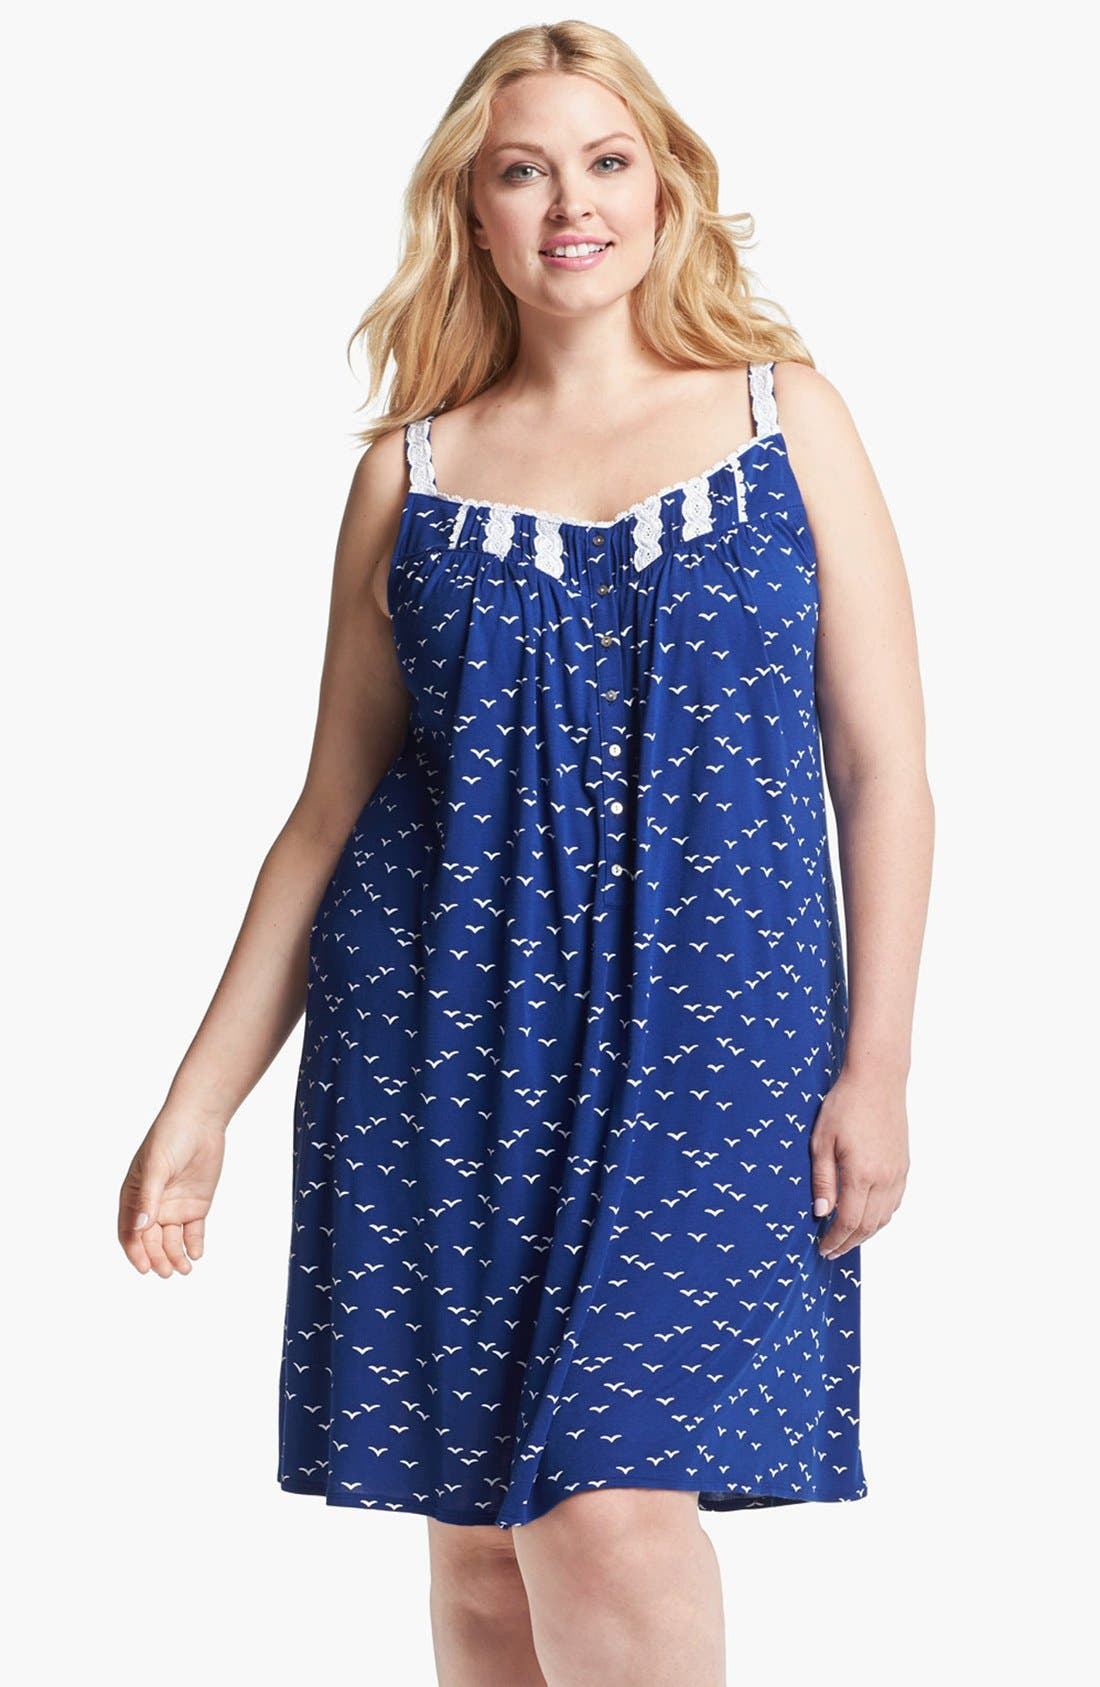 Alternate Image 1 Selected - Eileen West 'Set Sail' Sleeveless Nightgown (Plus Size)